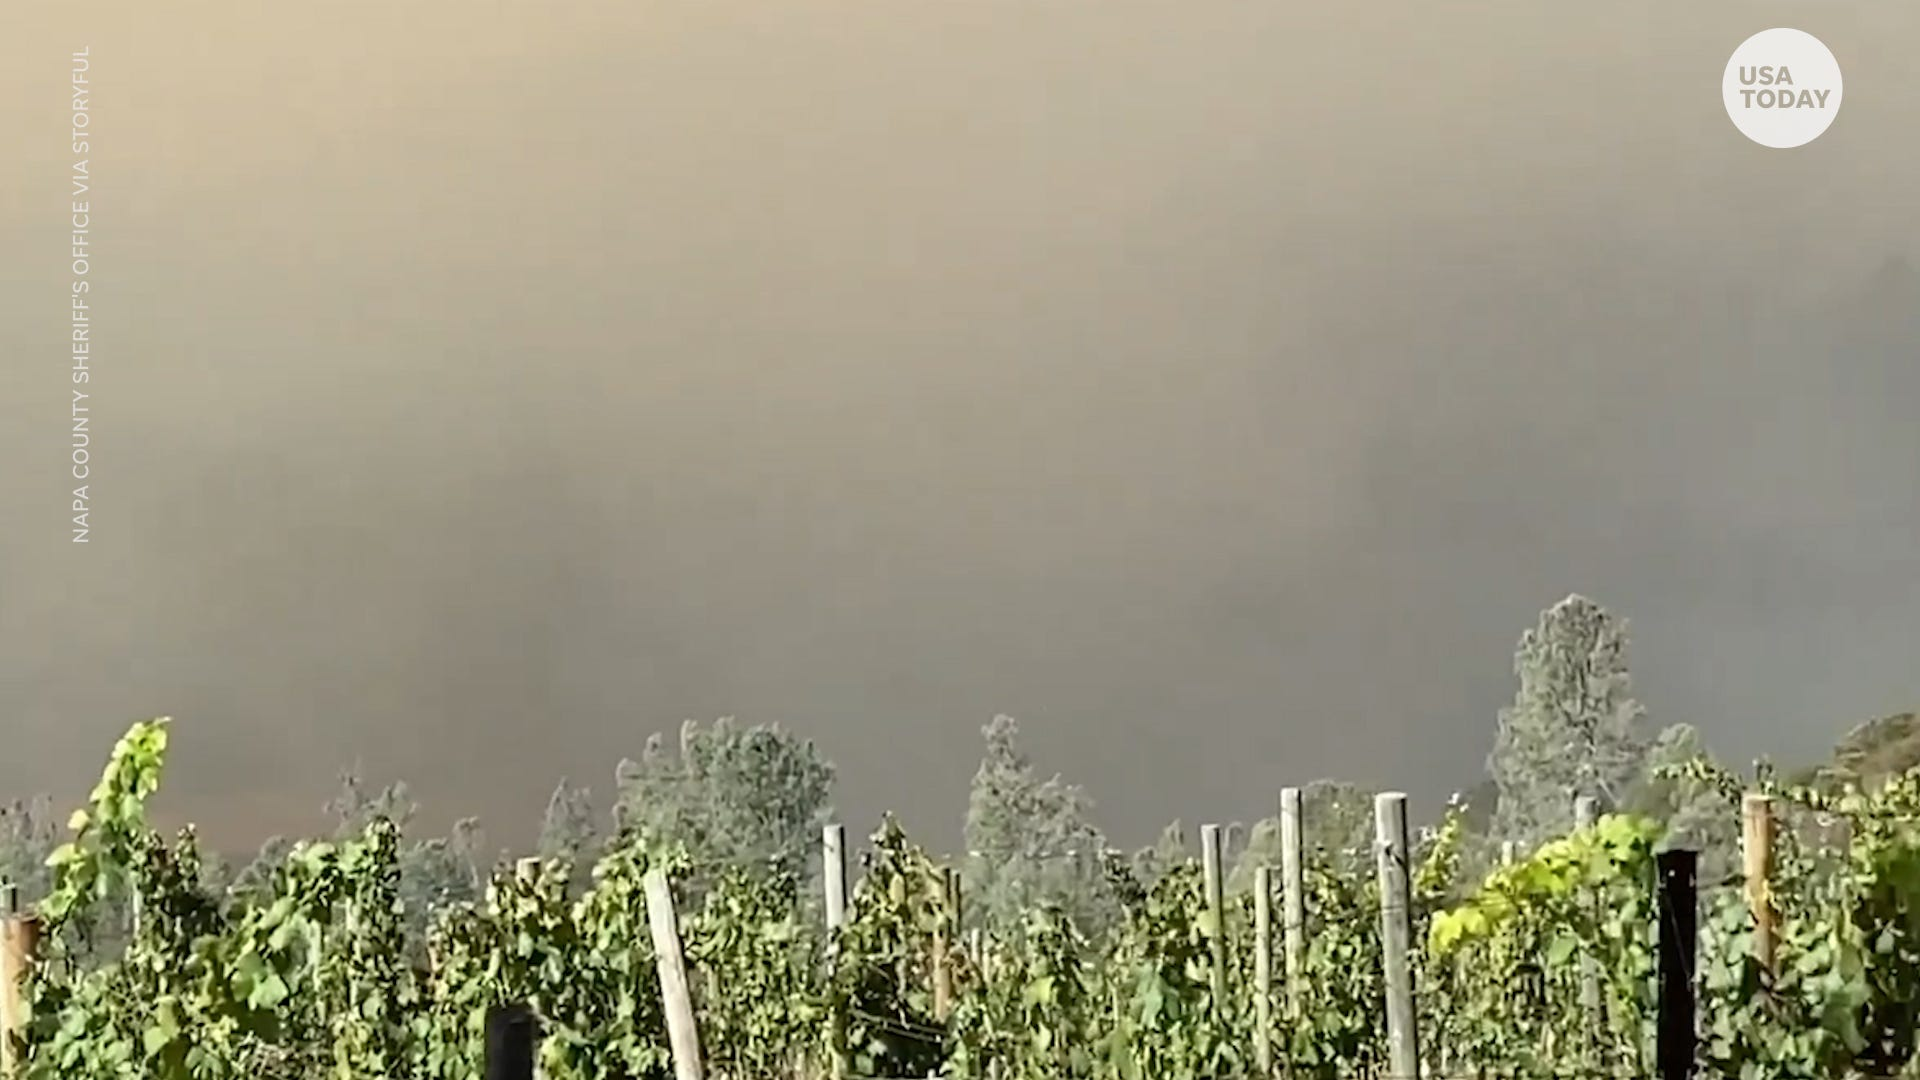 Glass Fire destruction: California's world-famous wineries impacted